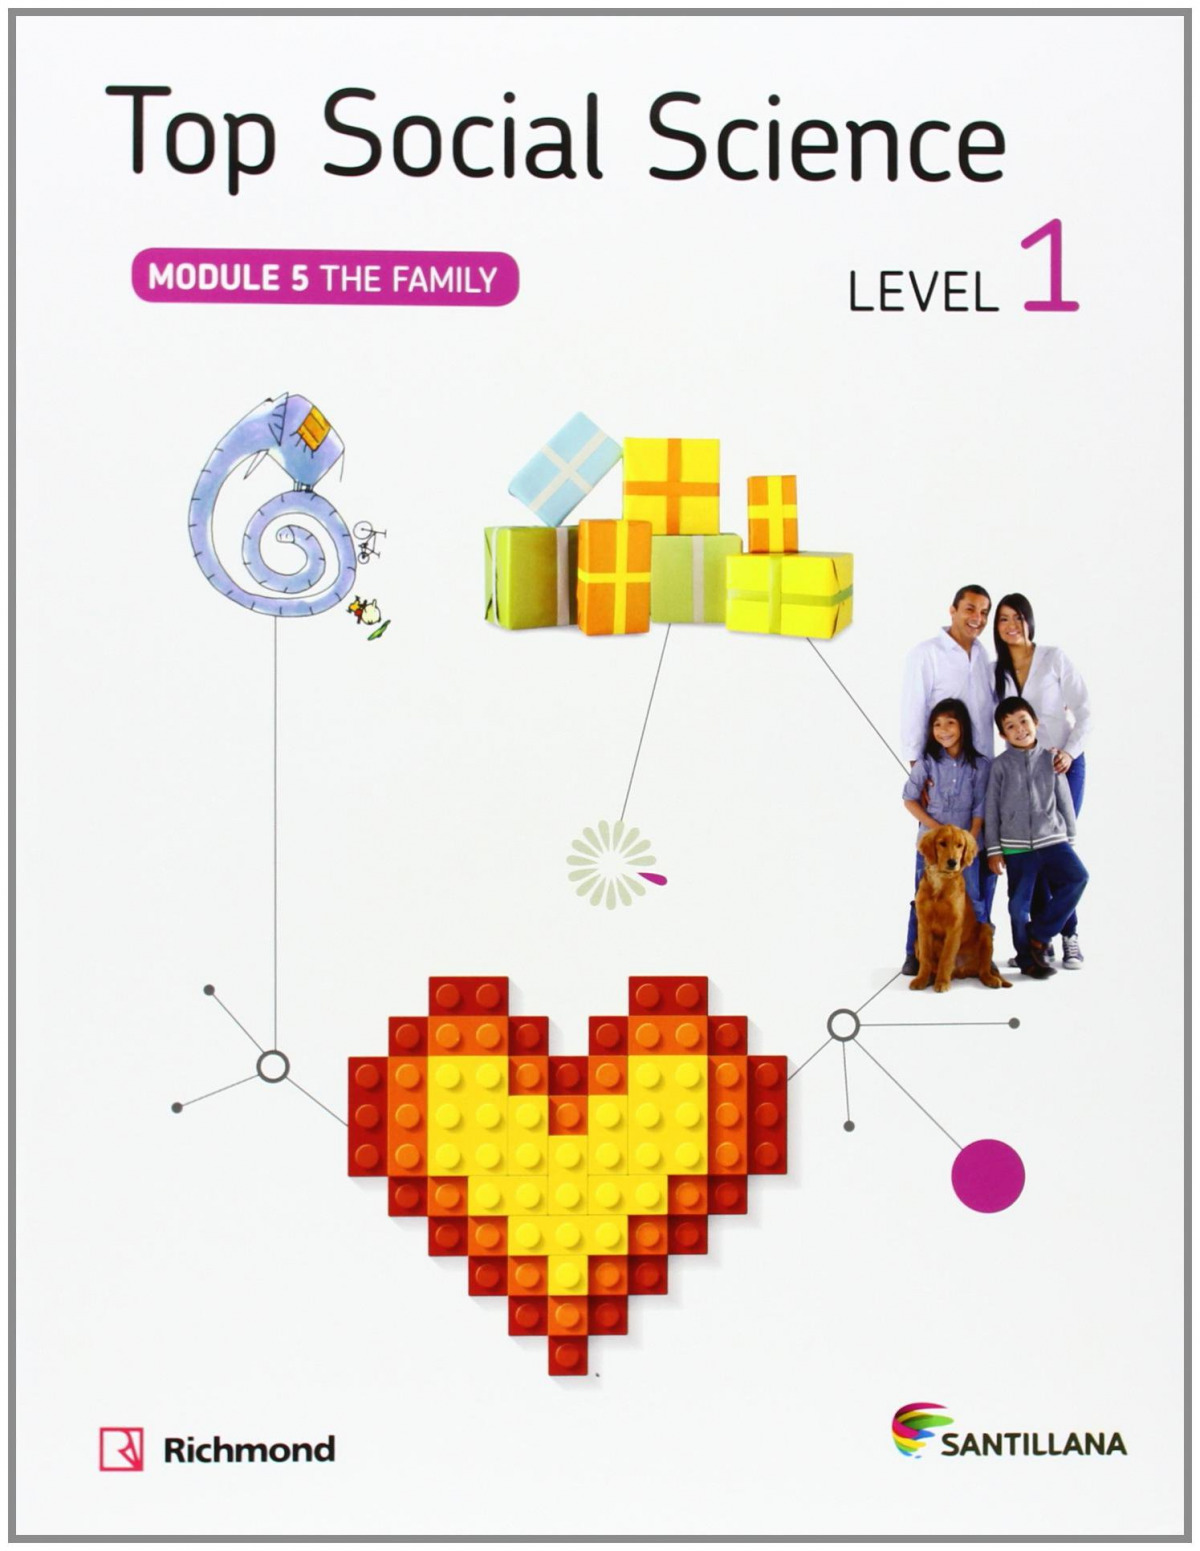 Top social science 1. The family